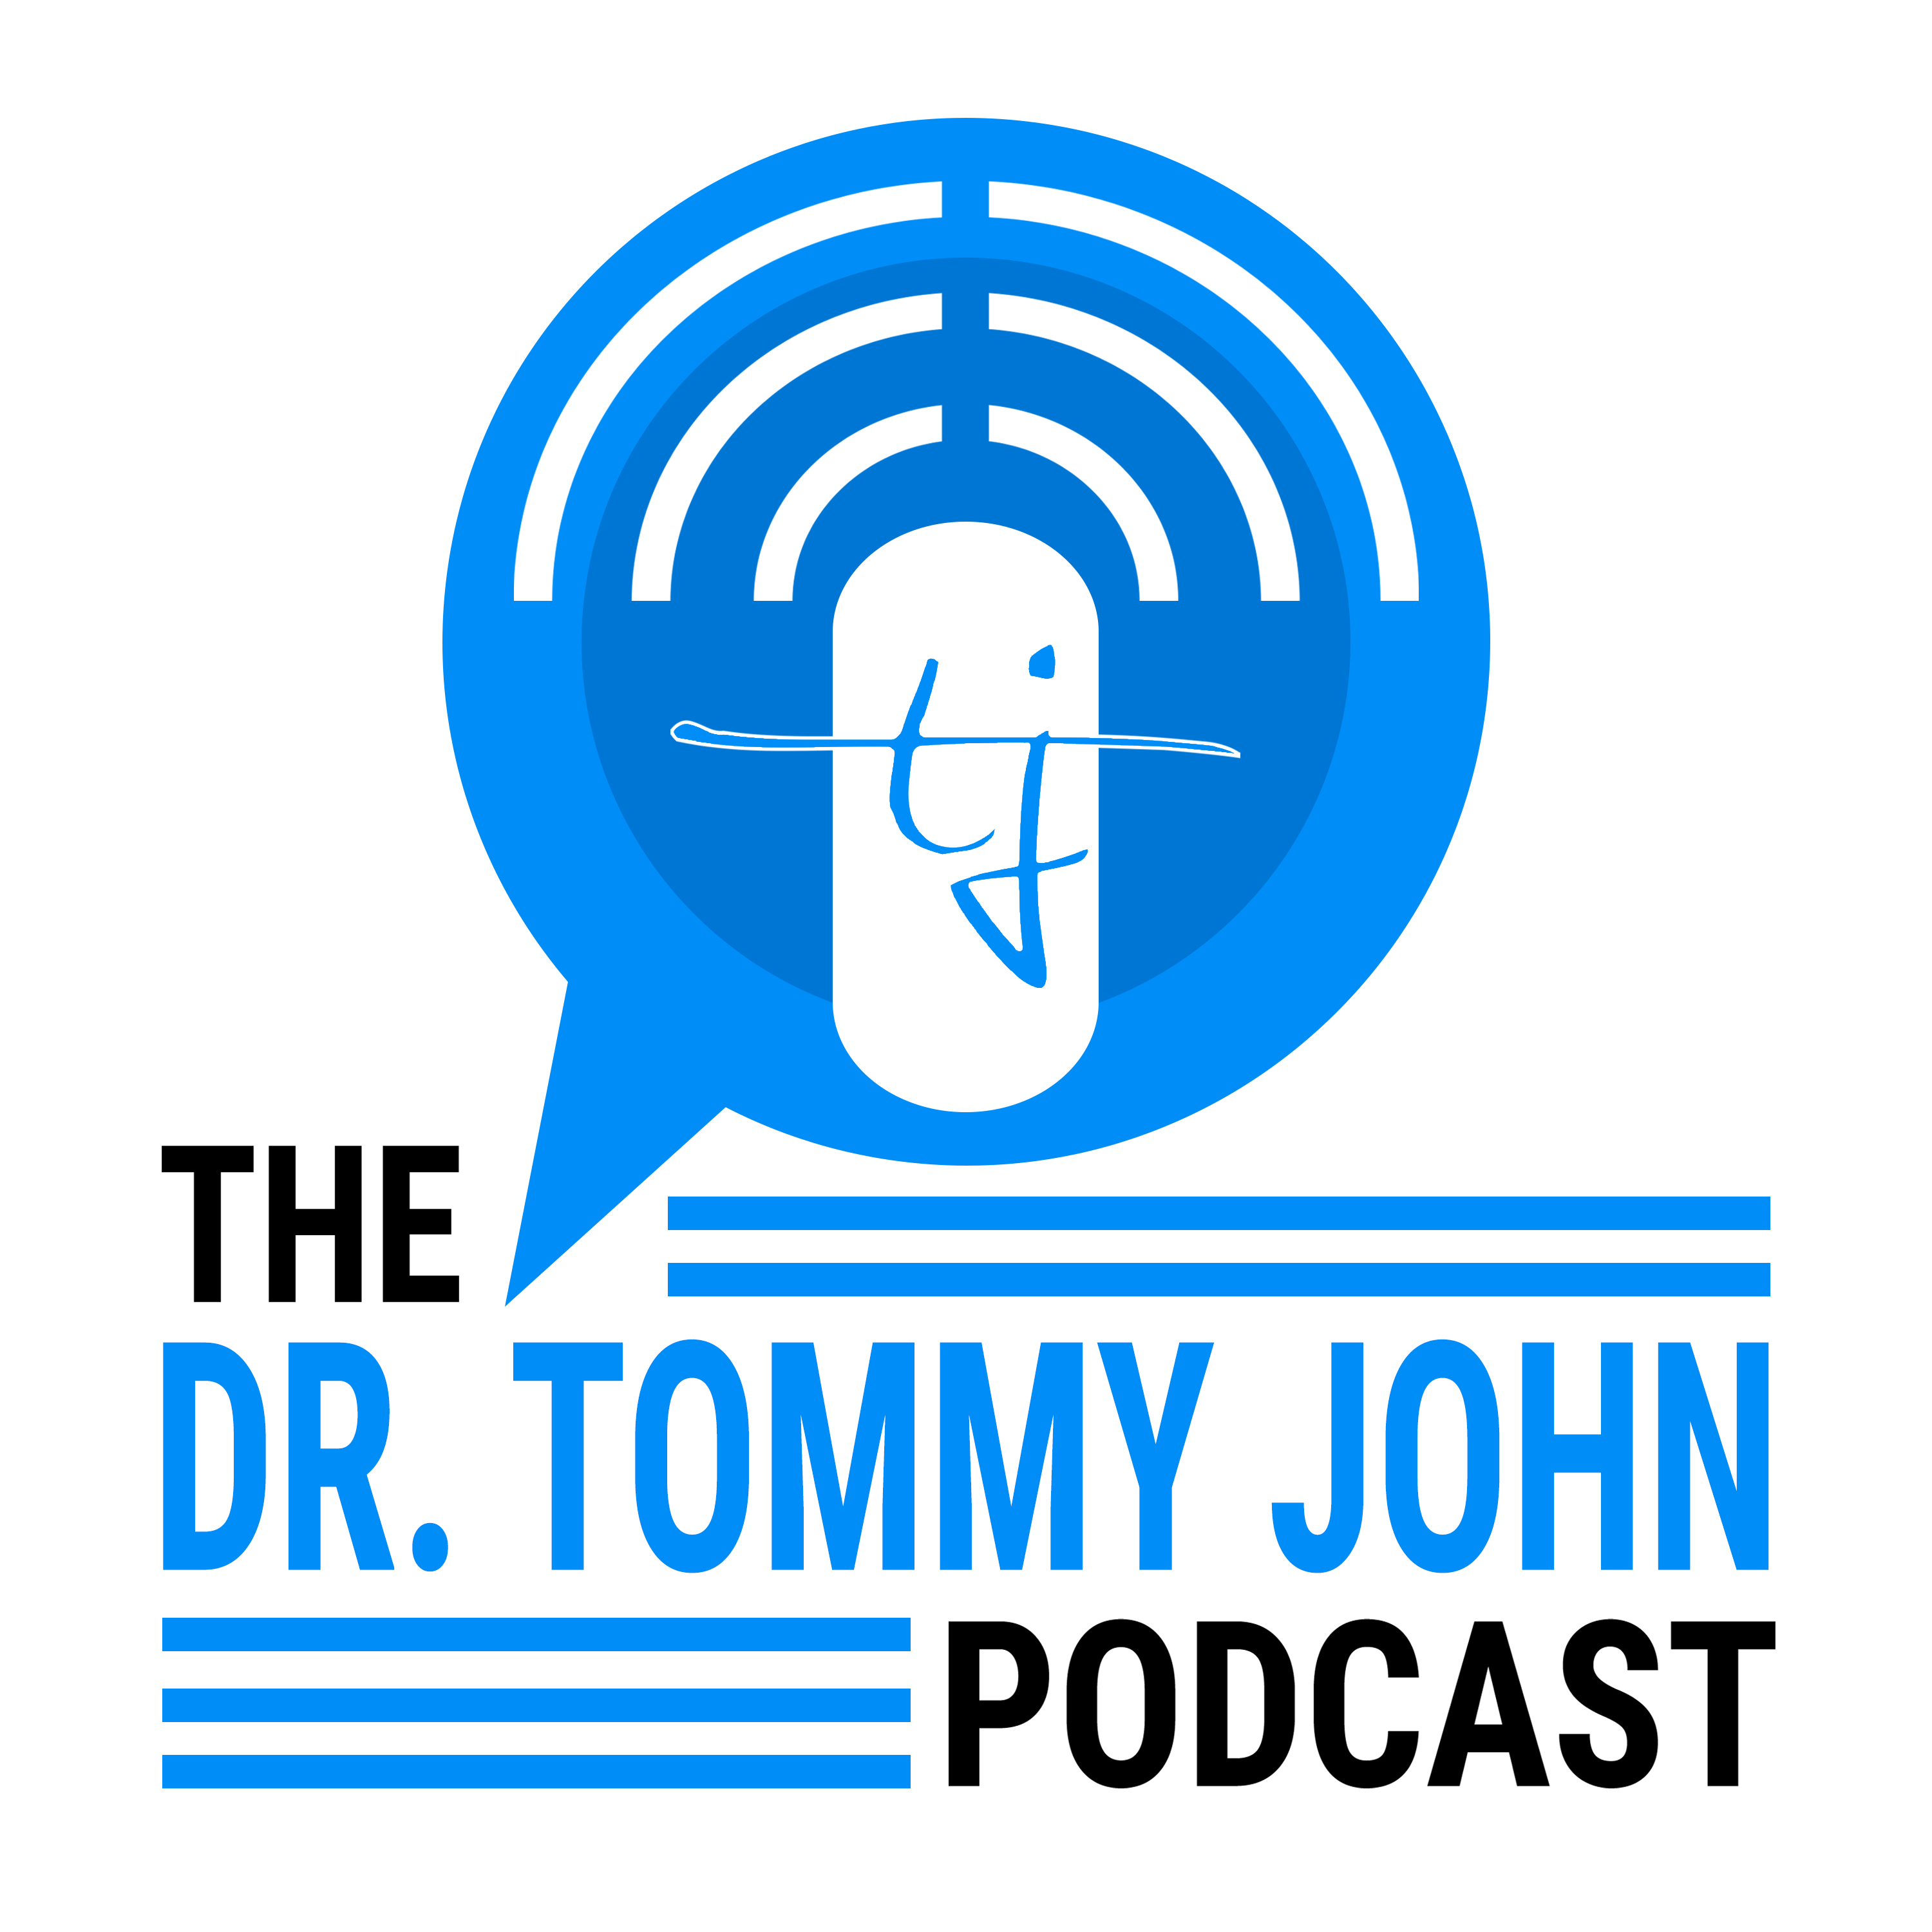 The Dr. Tommy John Podcast show image